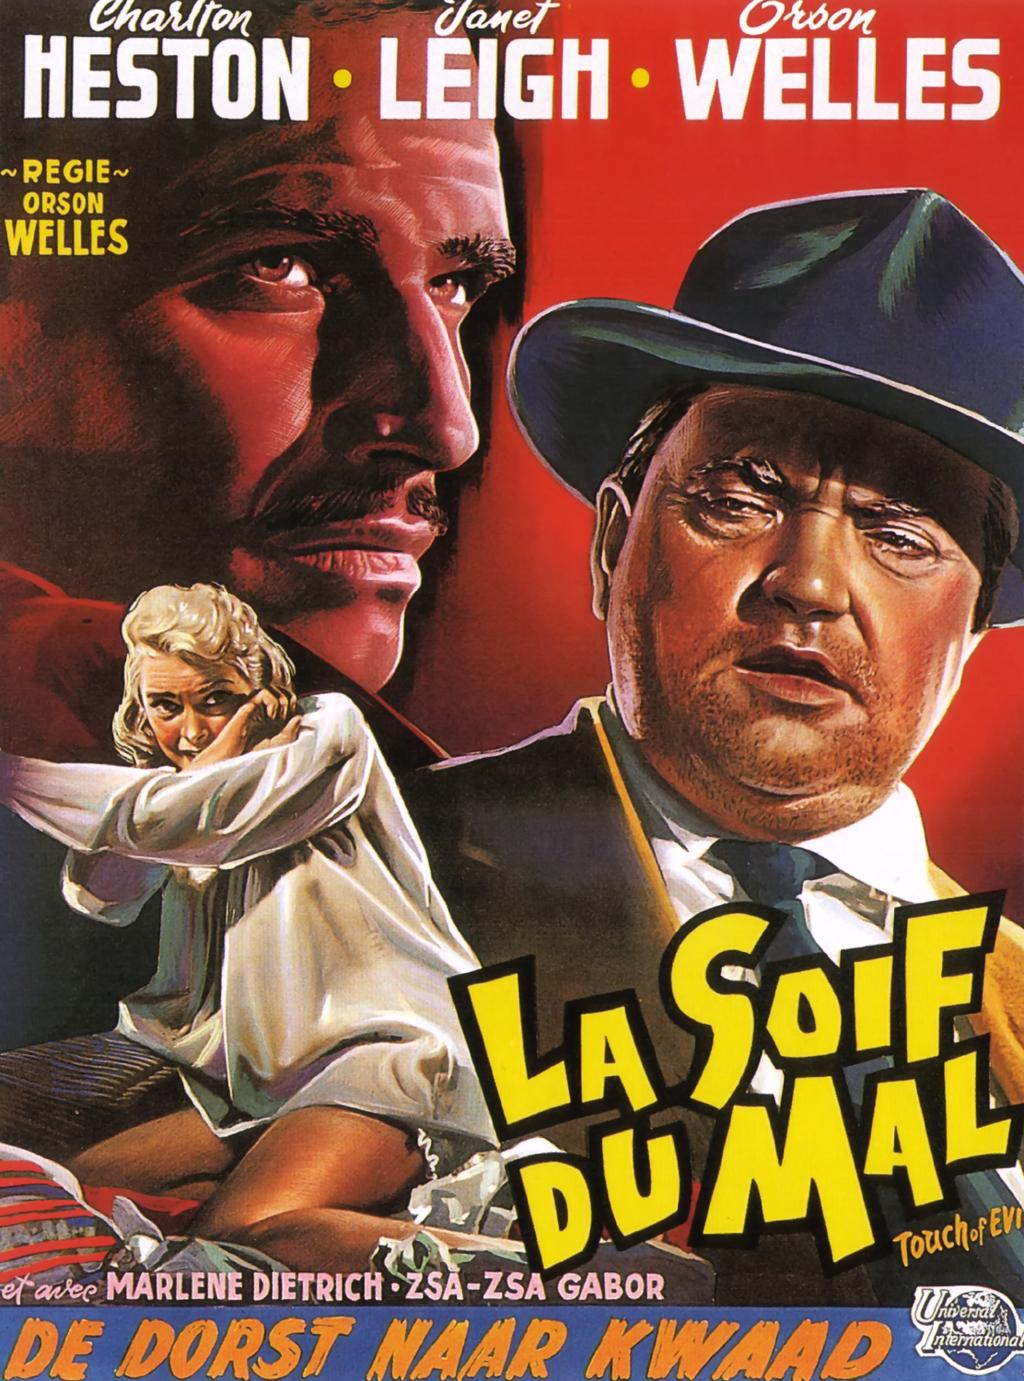 Touch of Evil (1958) belgian poster welles heston (41 strange)